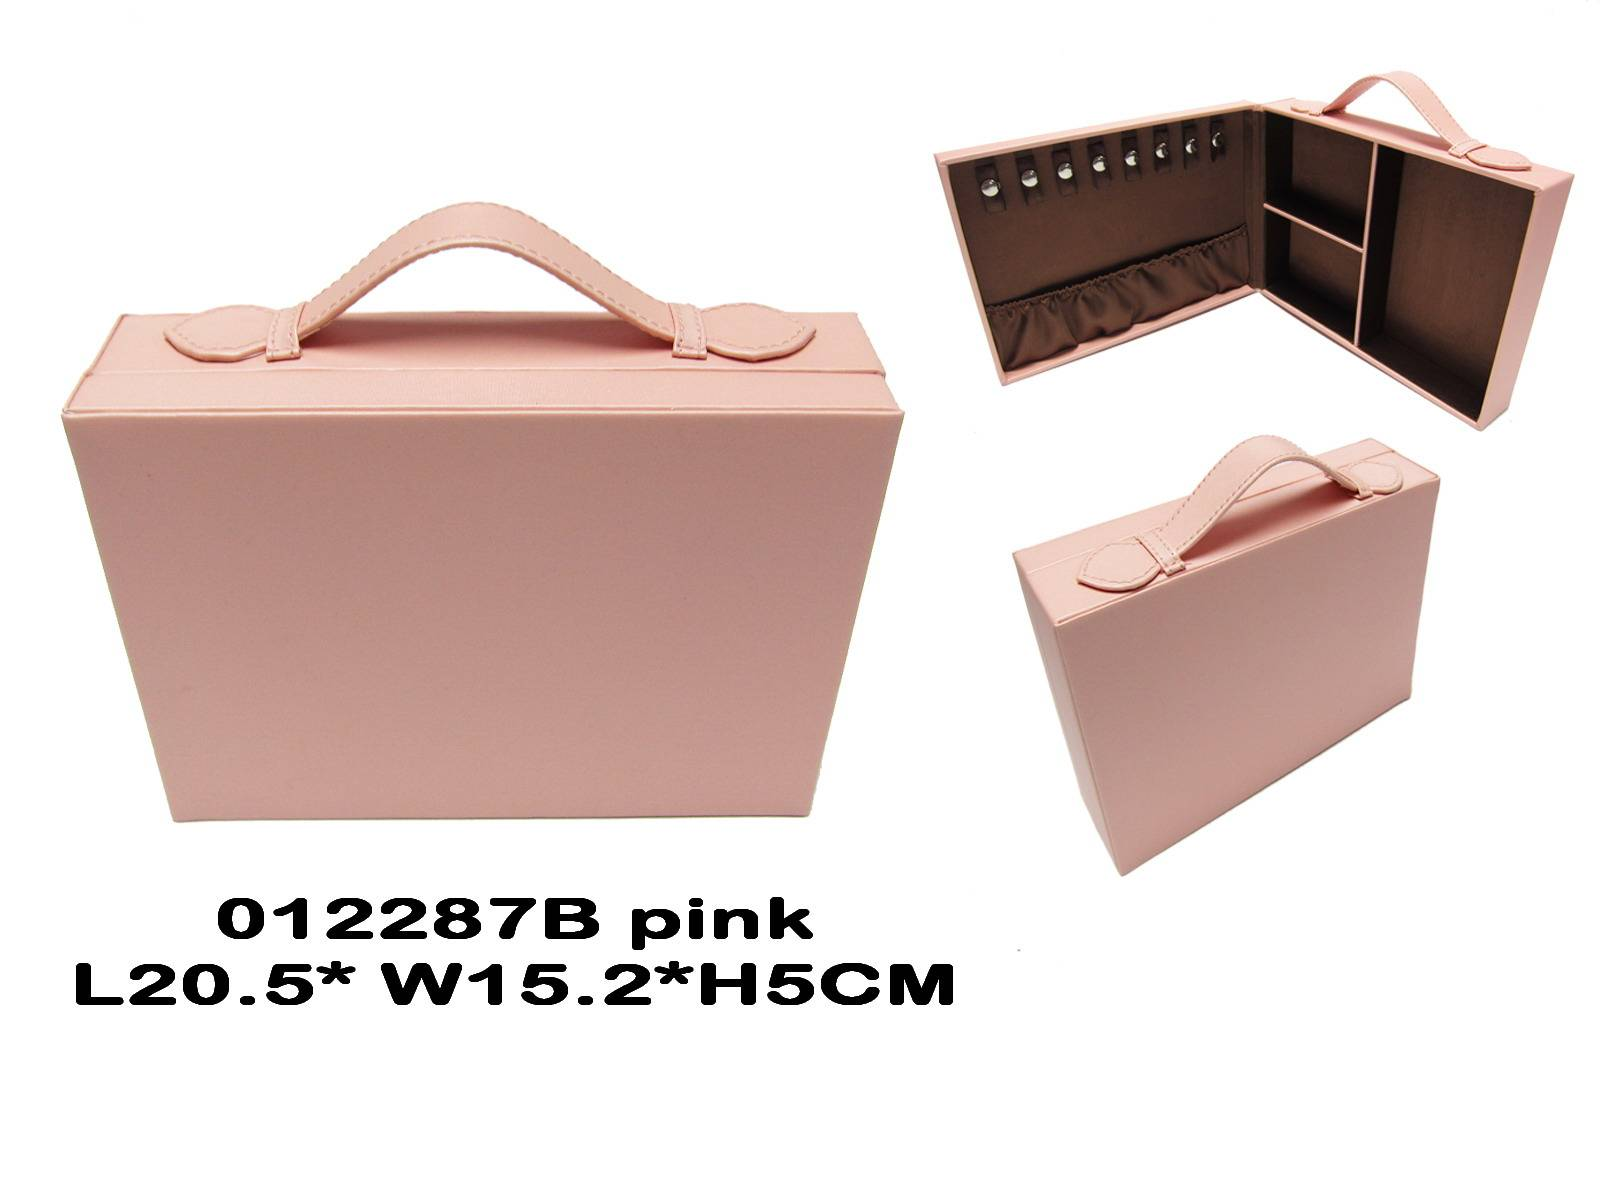 Square fabric travel jewelry box in pink, NEW!